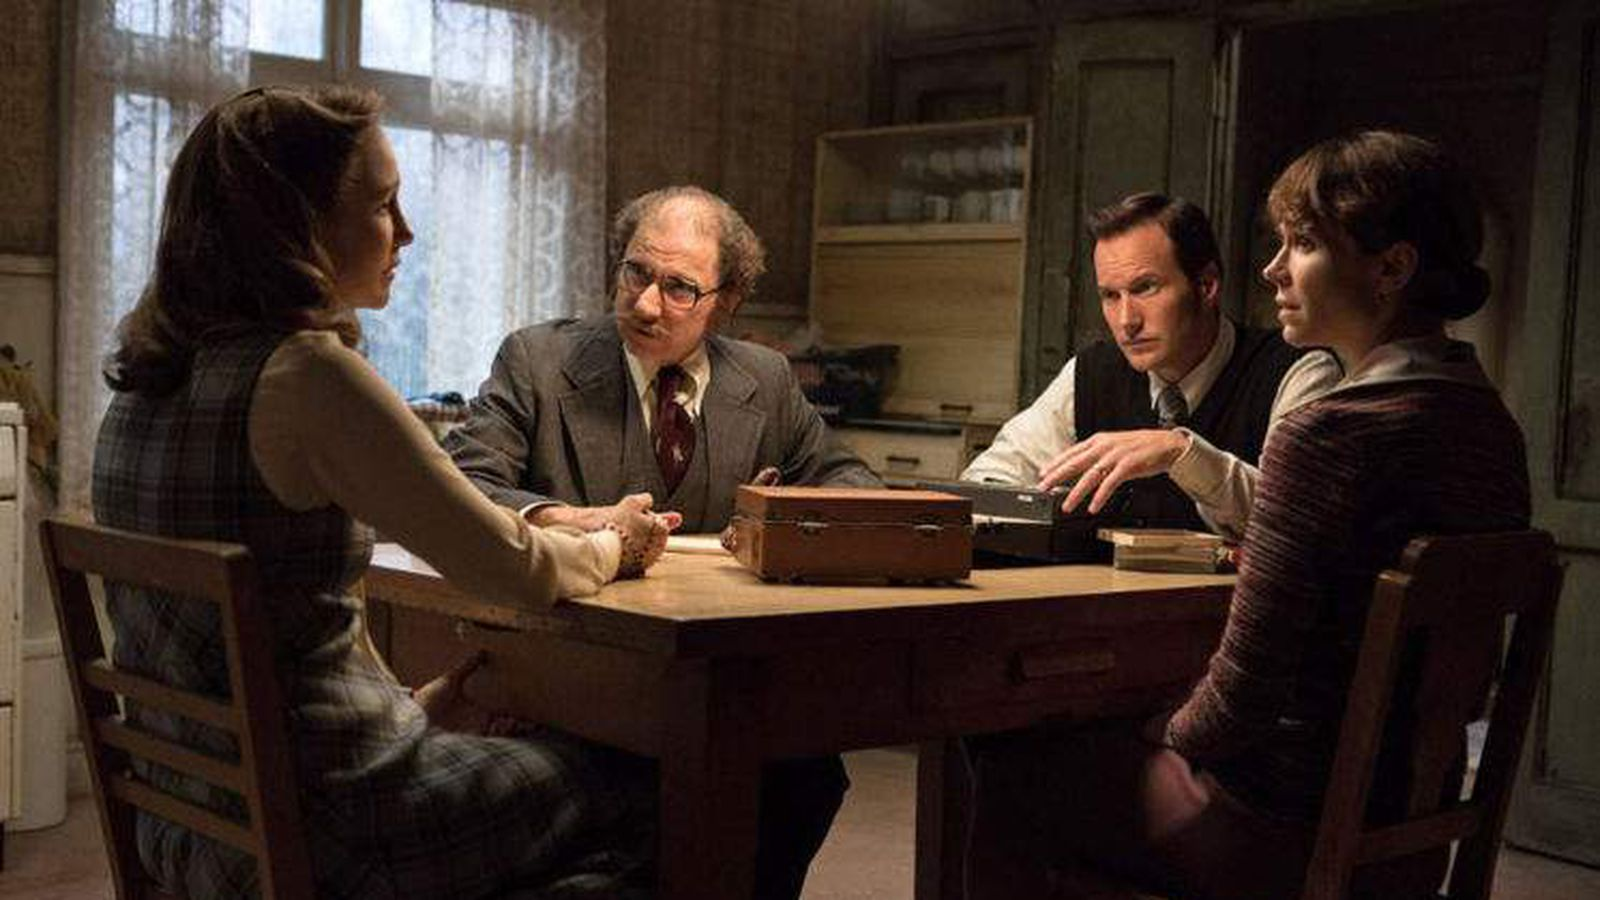 Review: 'The Conjuring 2' starts strong, falls back on cliches